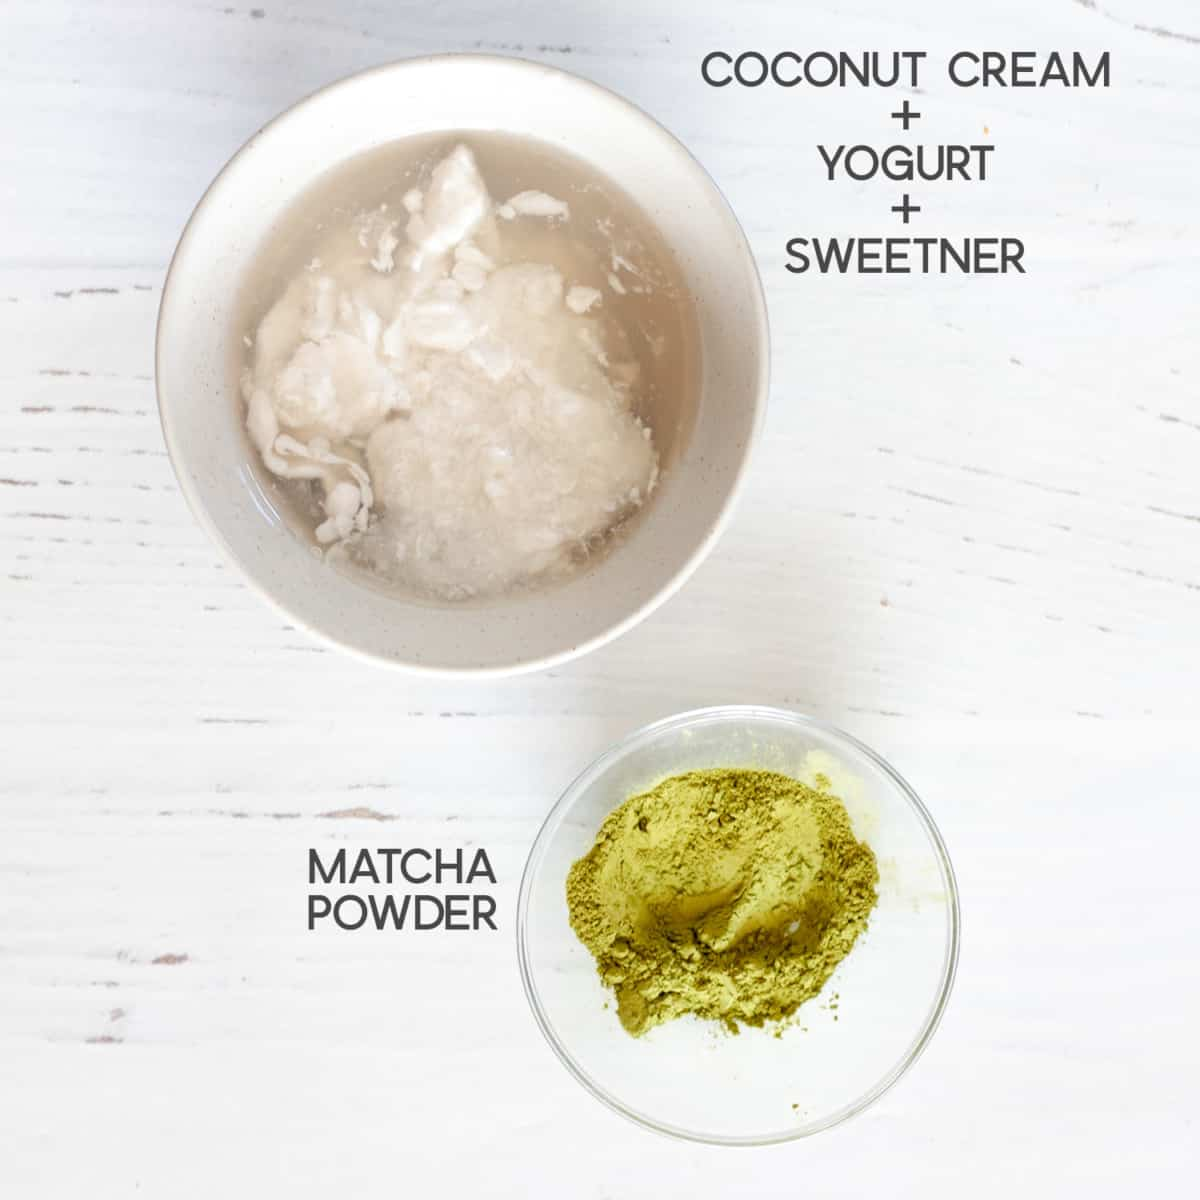 ingredients for Strawberry Matcha Smoothie top layer.